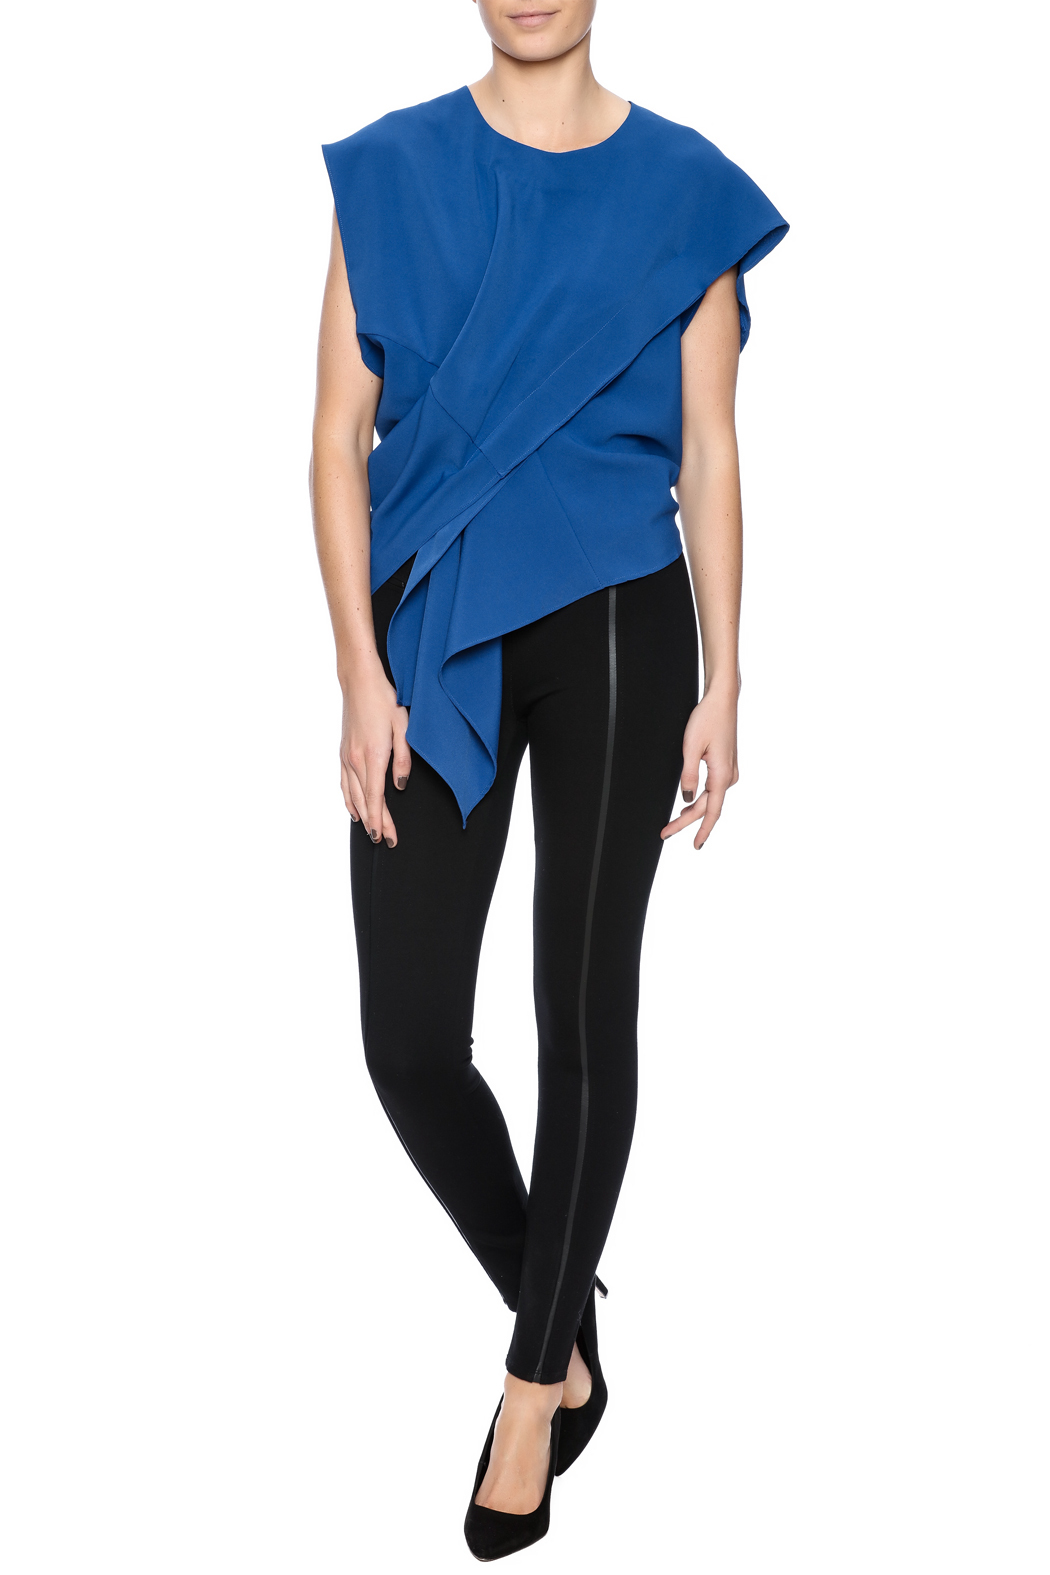 Gracia Origami Top from North Shore by Addicted — Shoptiques - photo#1